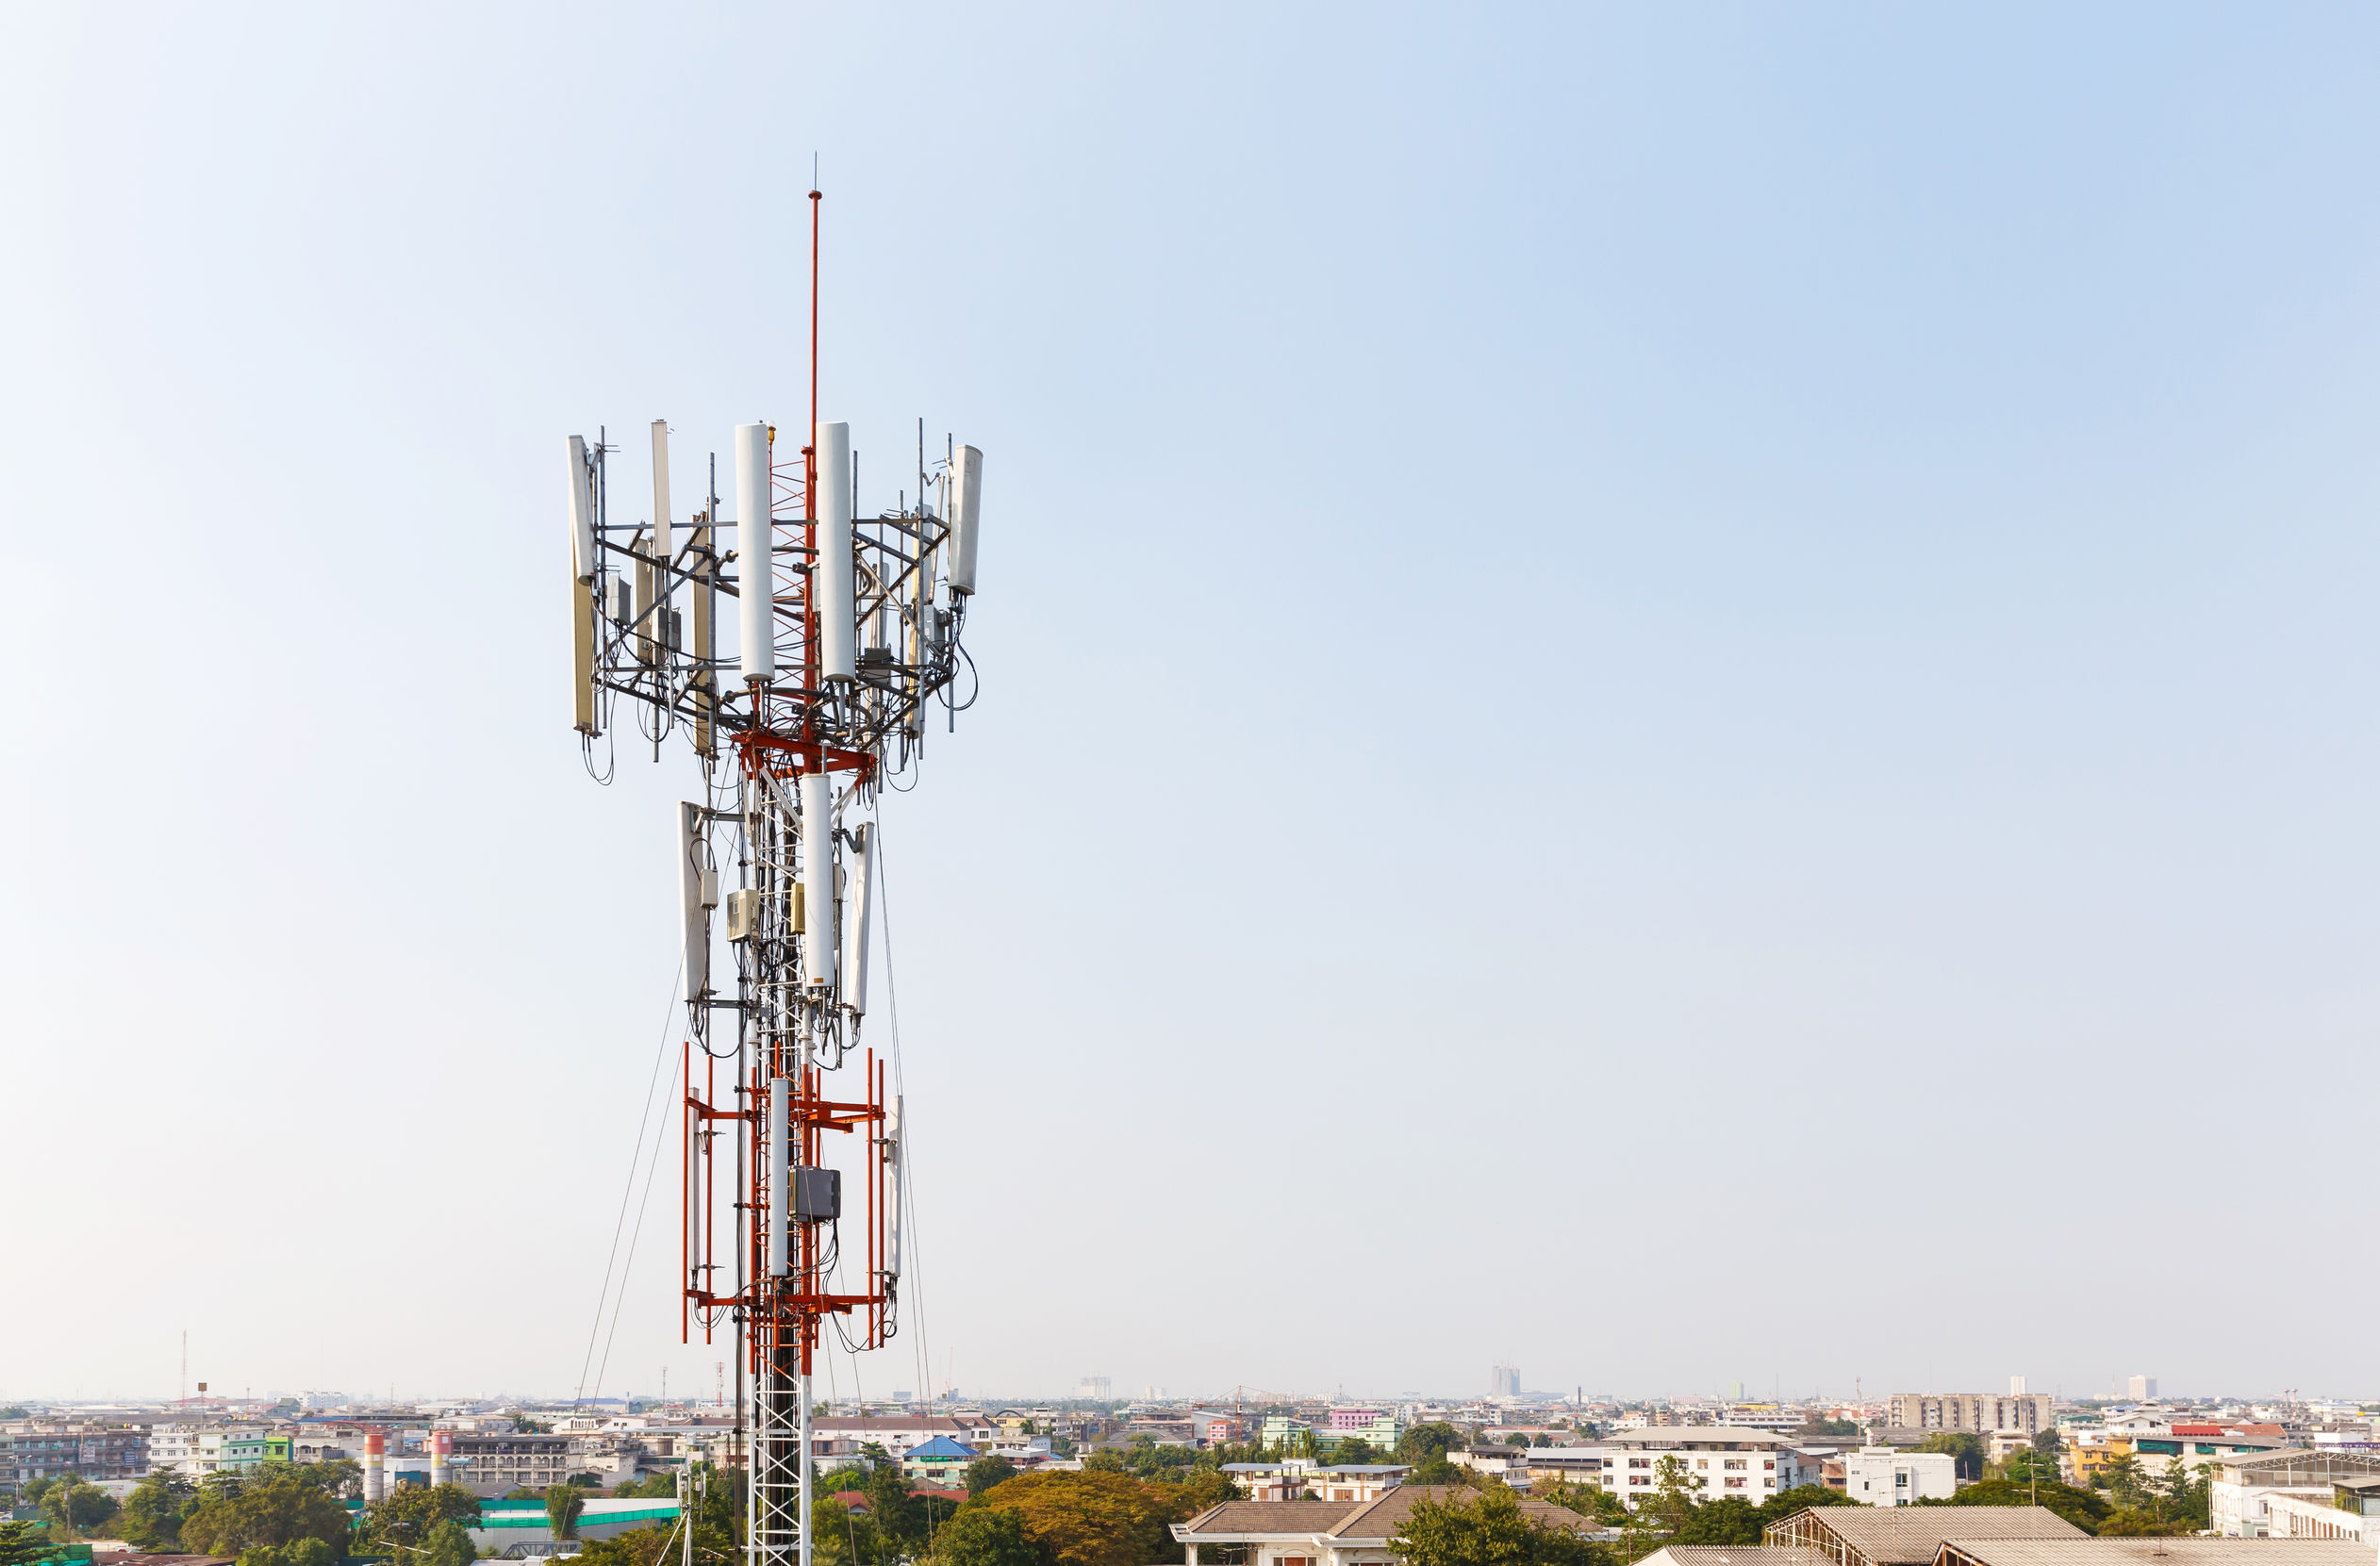 A crowded mobile network tower